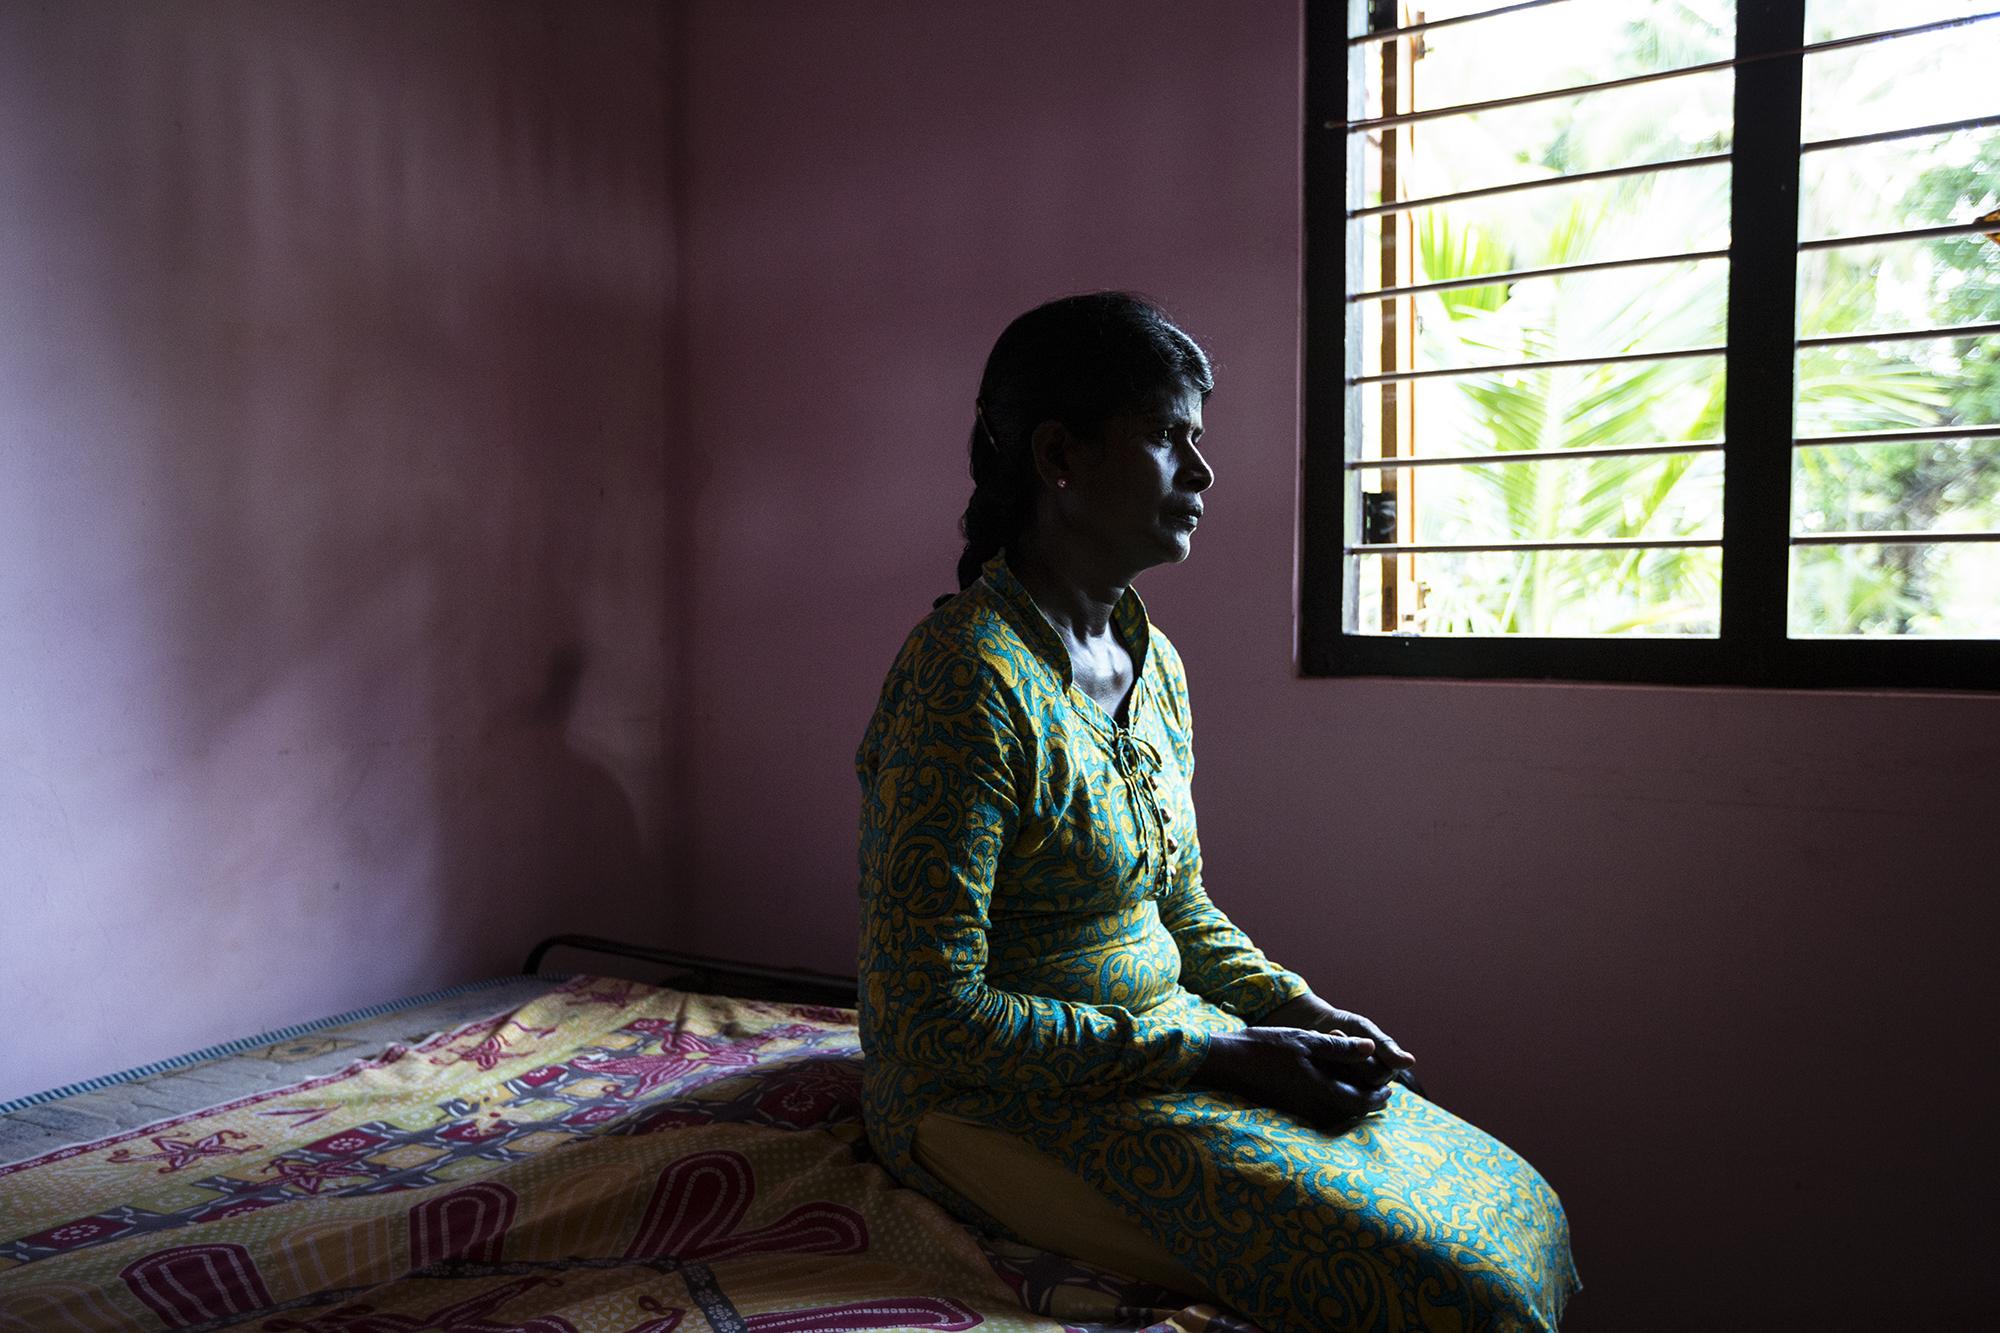 Iruthayarani, 36. Iruthayarani's husband was shot and killed in an open field while she was pregnant with their first child. She and her infant son lived in Cheddikulam displacement camp until they left the camp in 2012 to live on a small plot of jungle land allocated by the government.